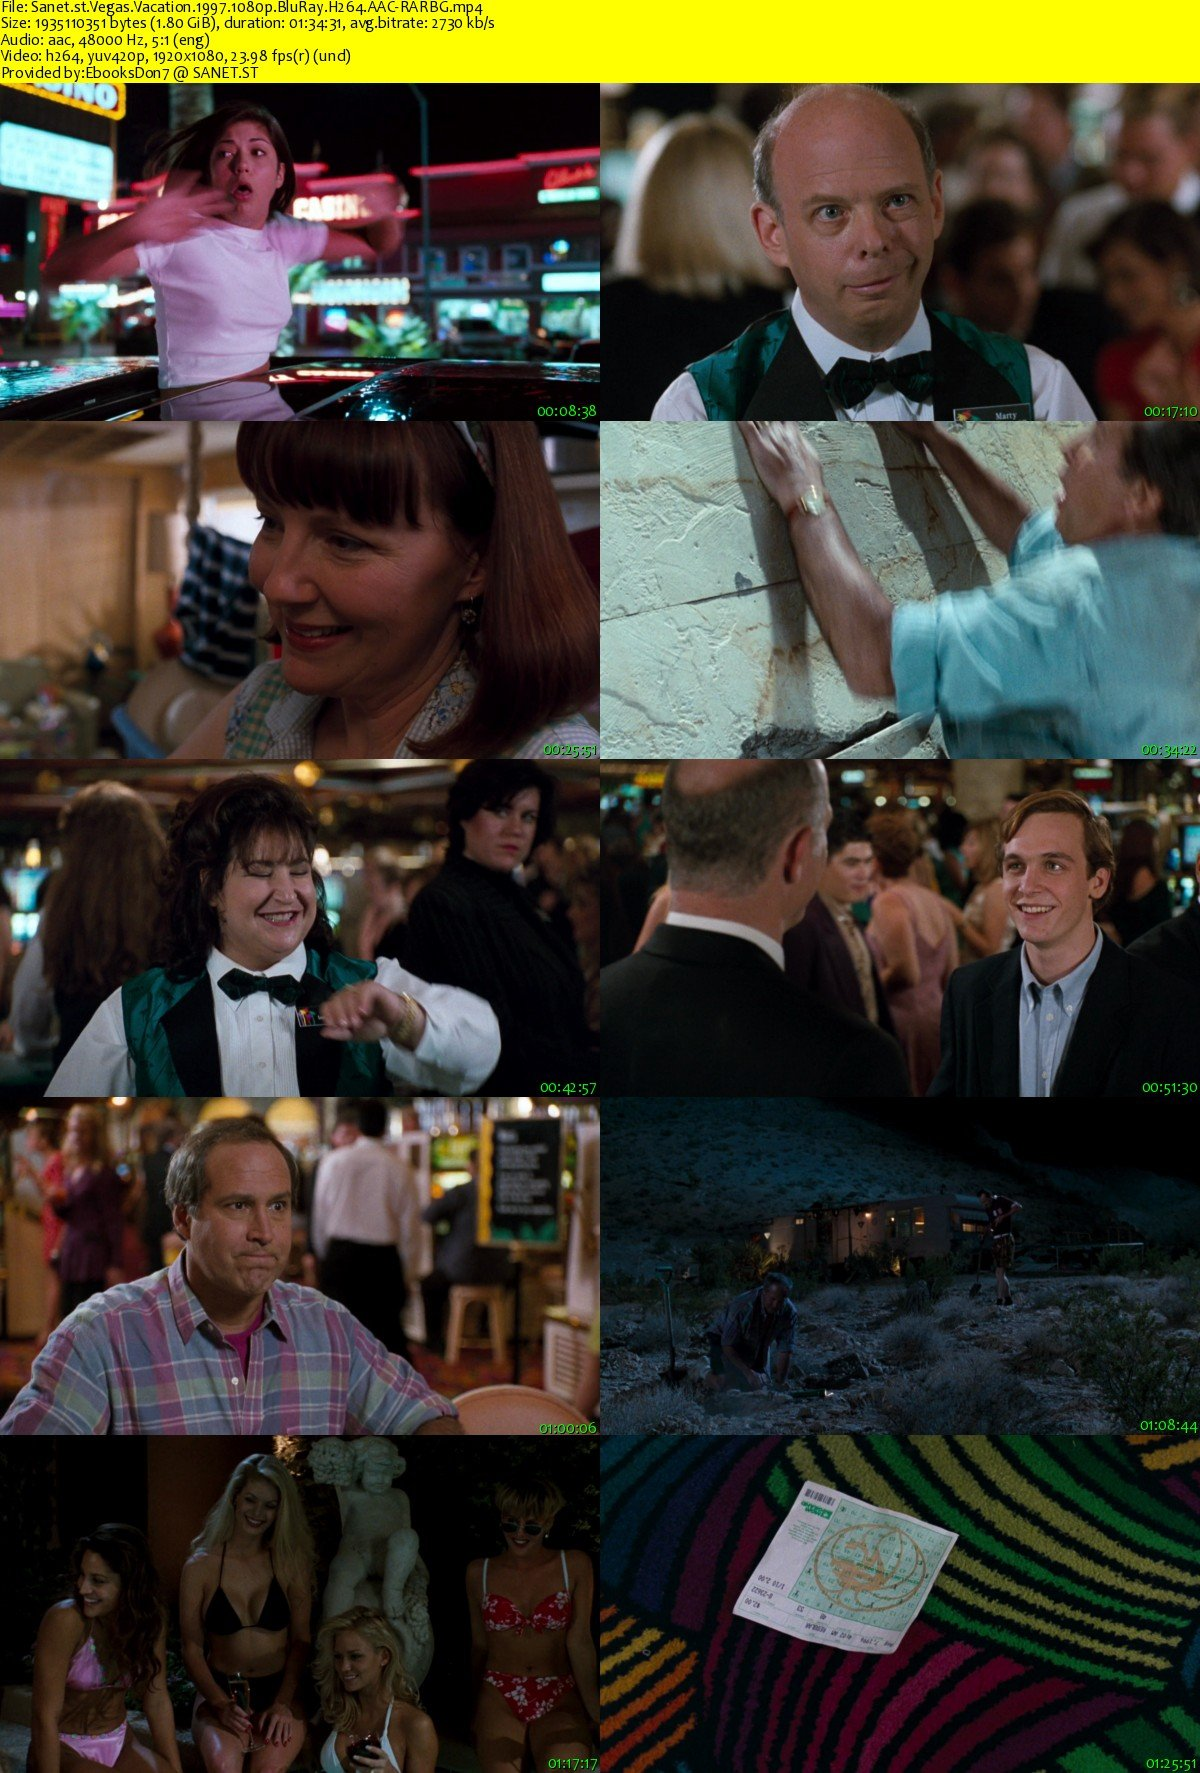 Movie Vegas Vacation 1997 720p Bluray X264 Mp4: Download Vegas Vacation 1997 1080p BluRay H264 AAC-RARBG